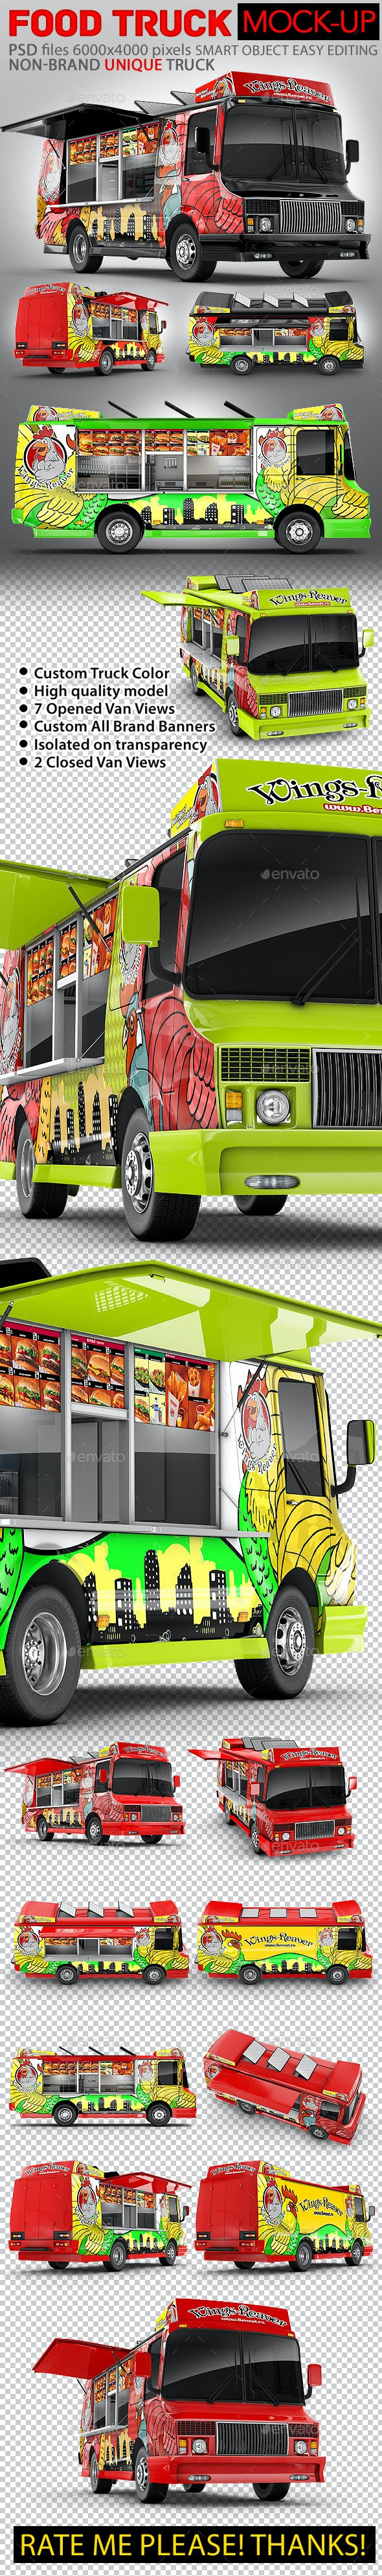 Food Truck Mock-Up. Unique 3D model mockup. - Vehicle Wraps Print